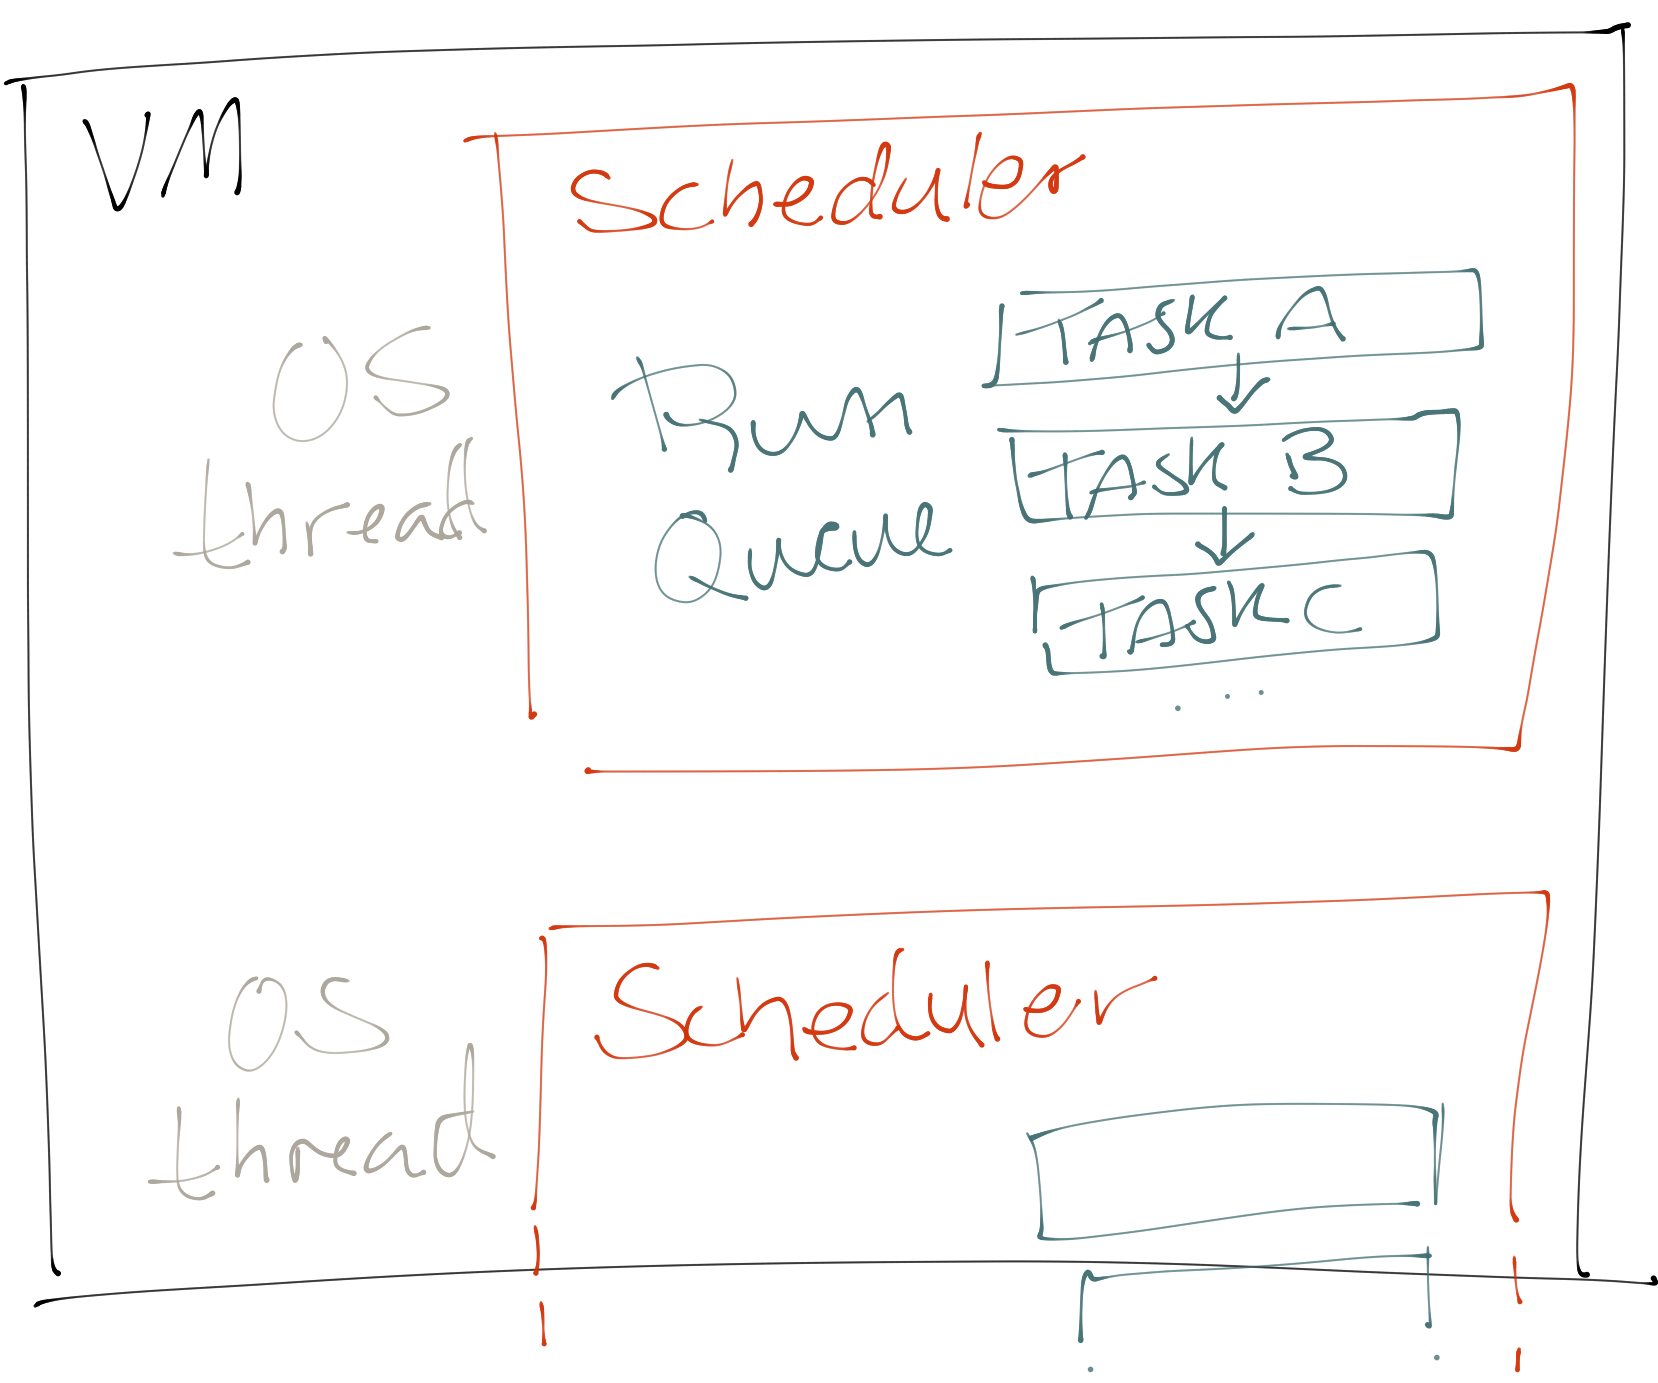 Sketch of the VM with schedulers